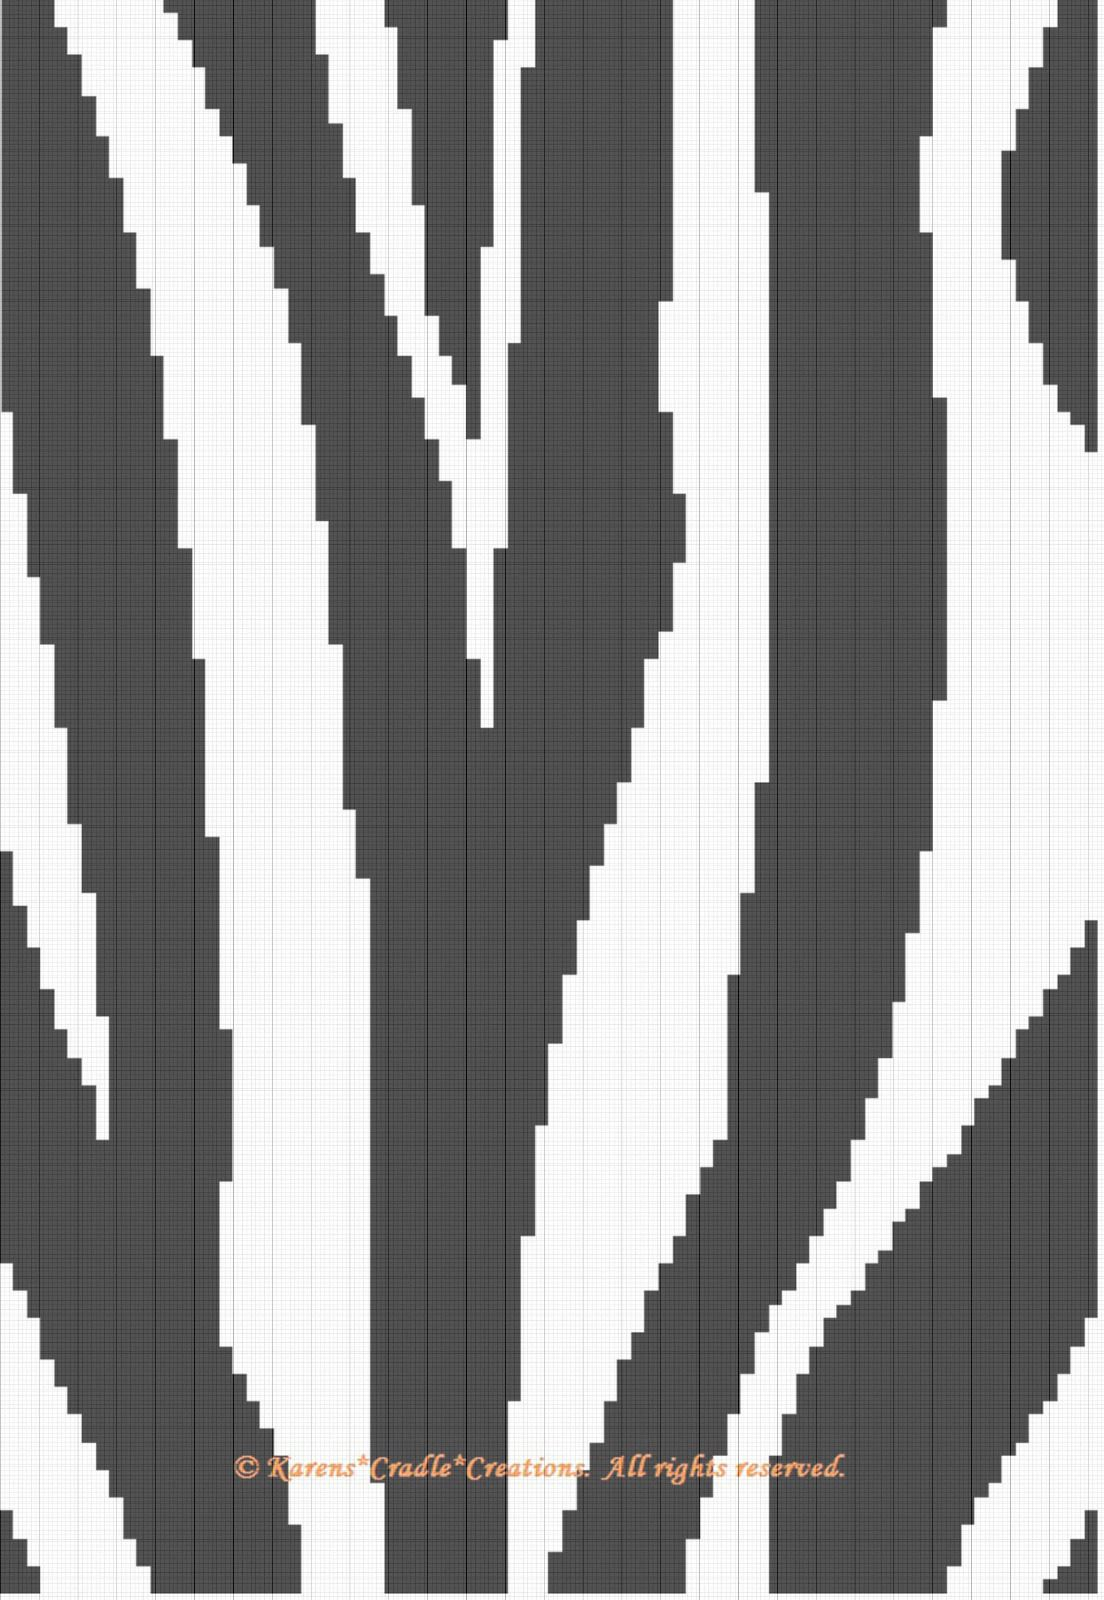 Crochet Patterns Zebra Print Graph Afghan Pattern Easy Products